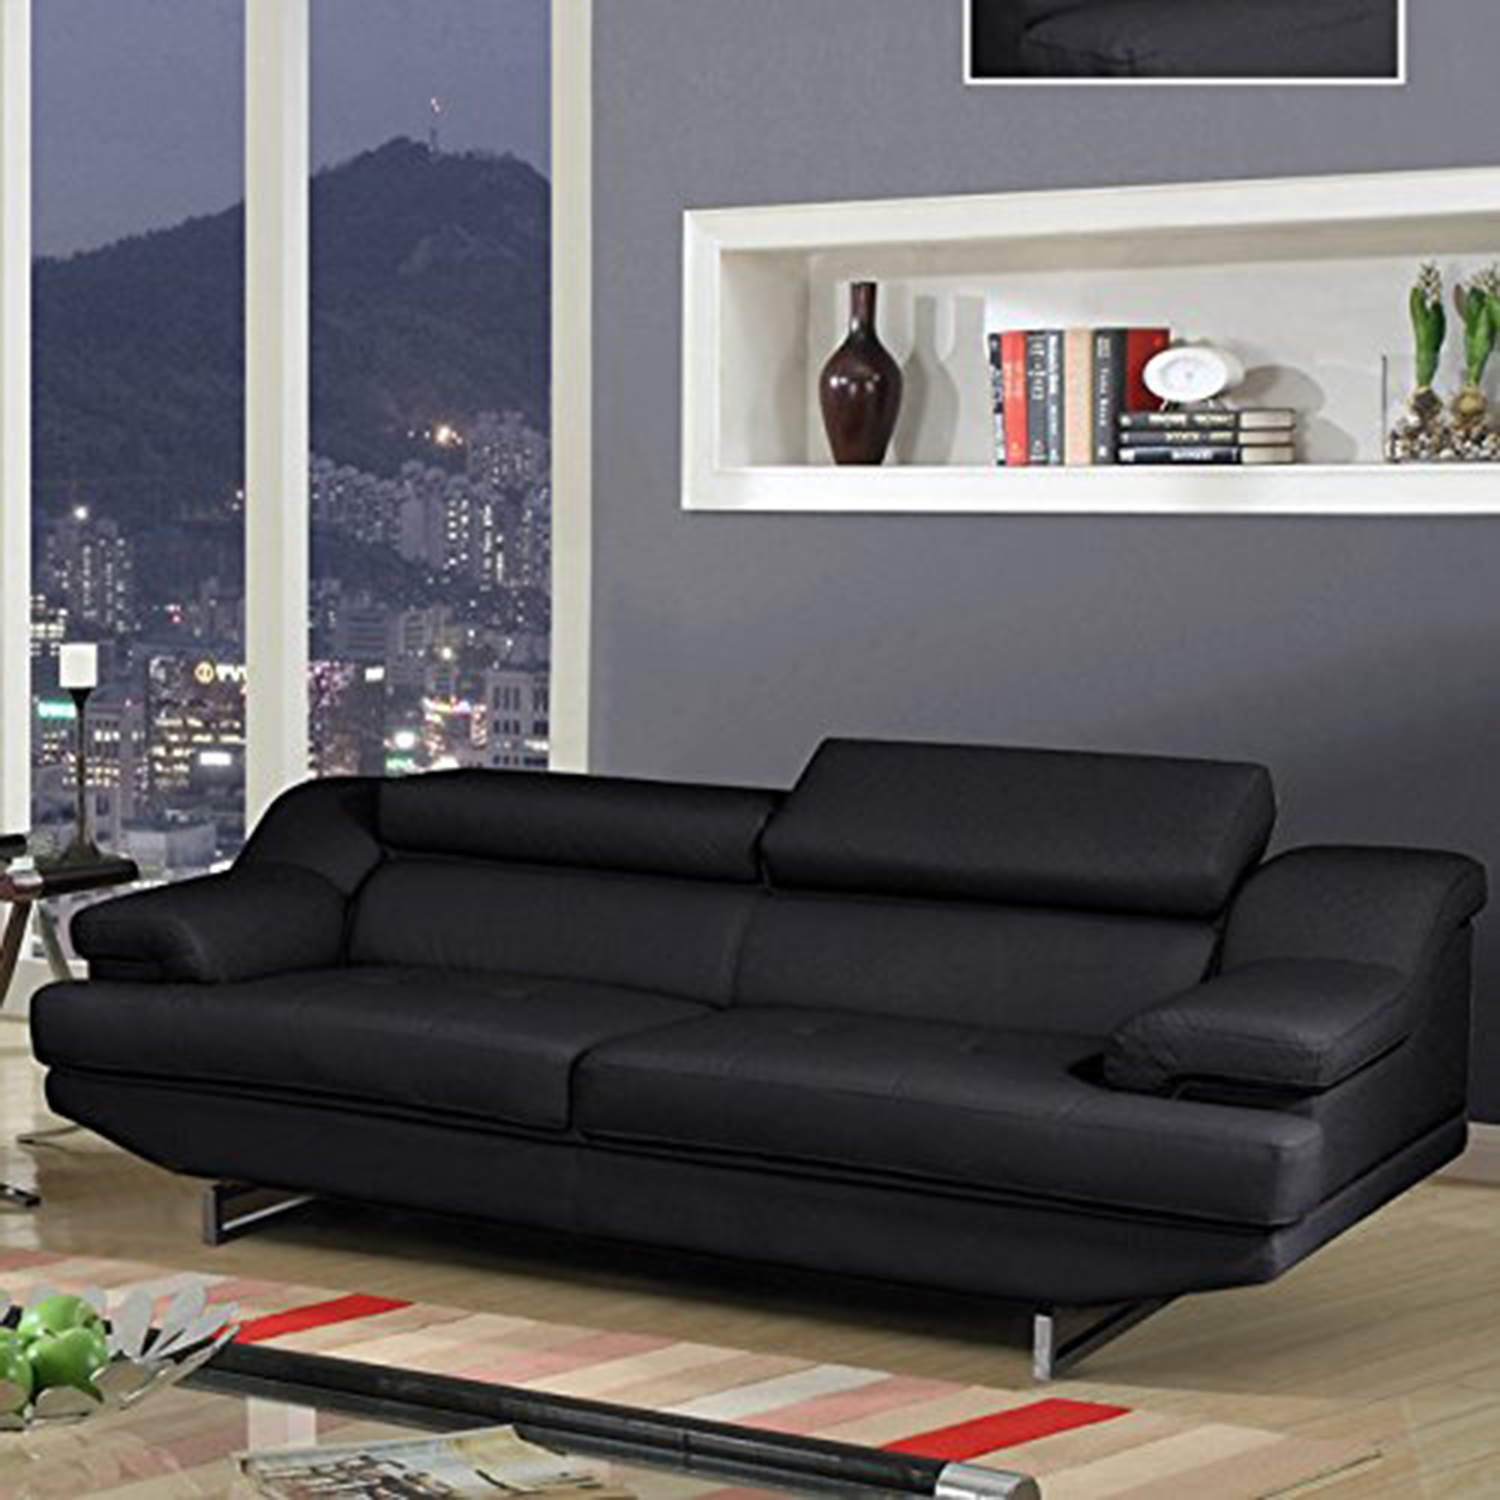 leather sofa charlotte nc sofa in black leather dcg stores 6892